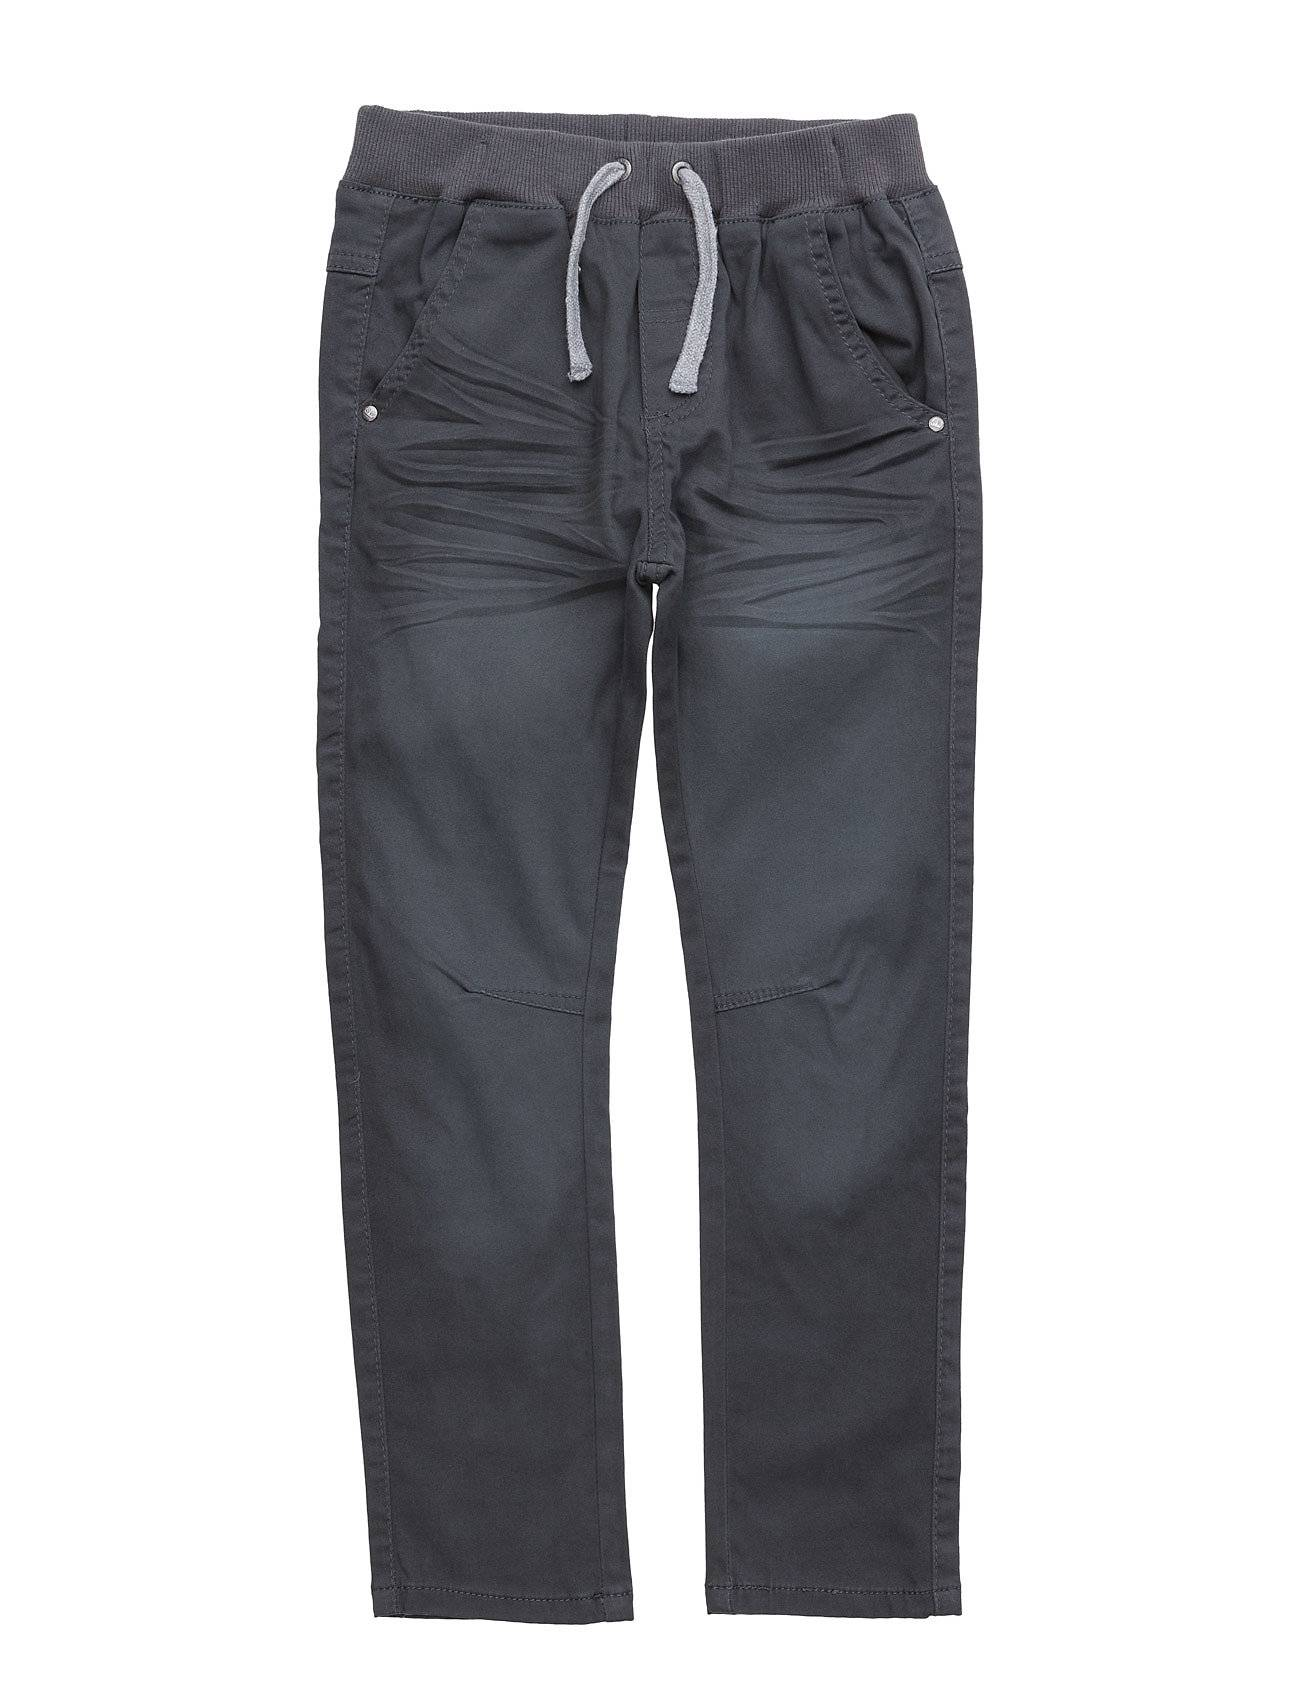 Hust & Claire Trousers